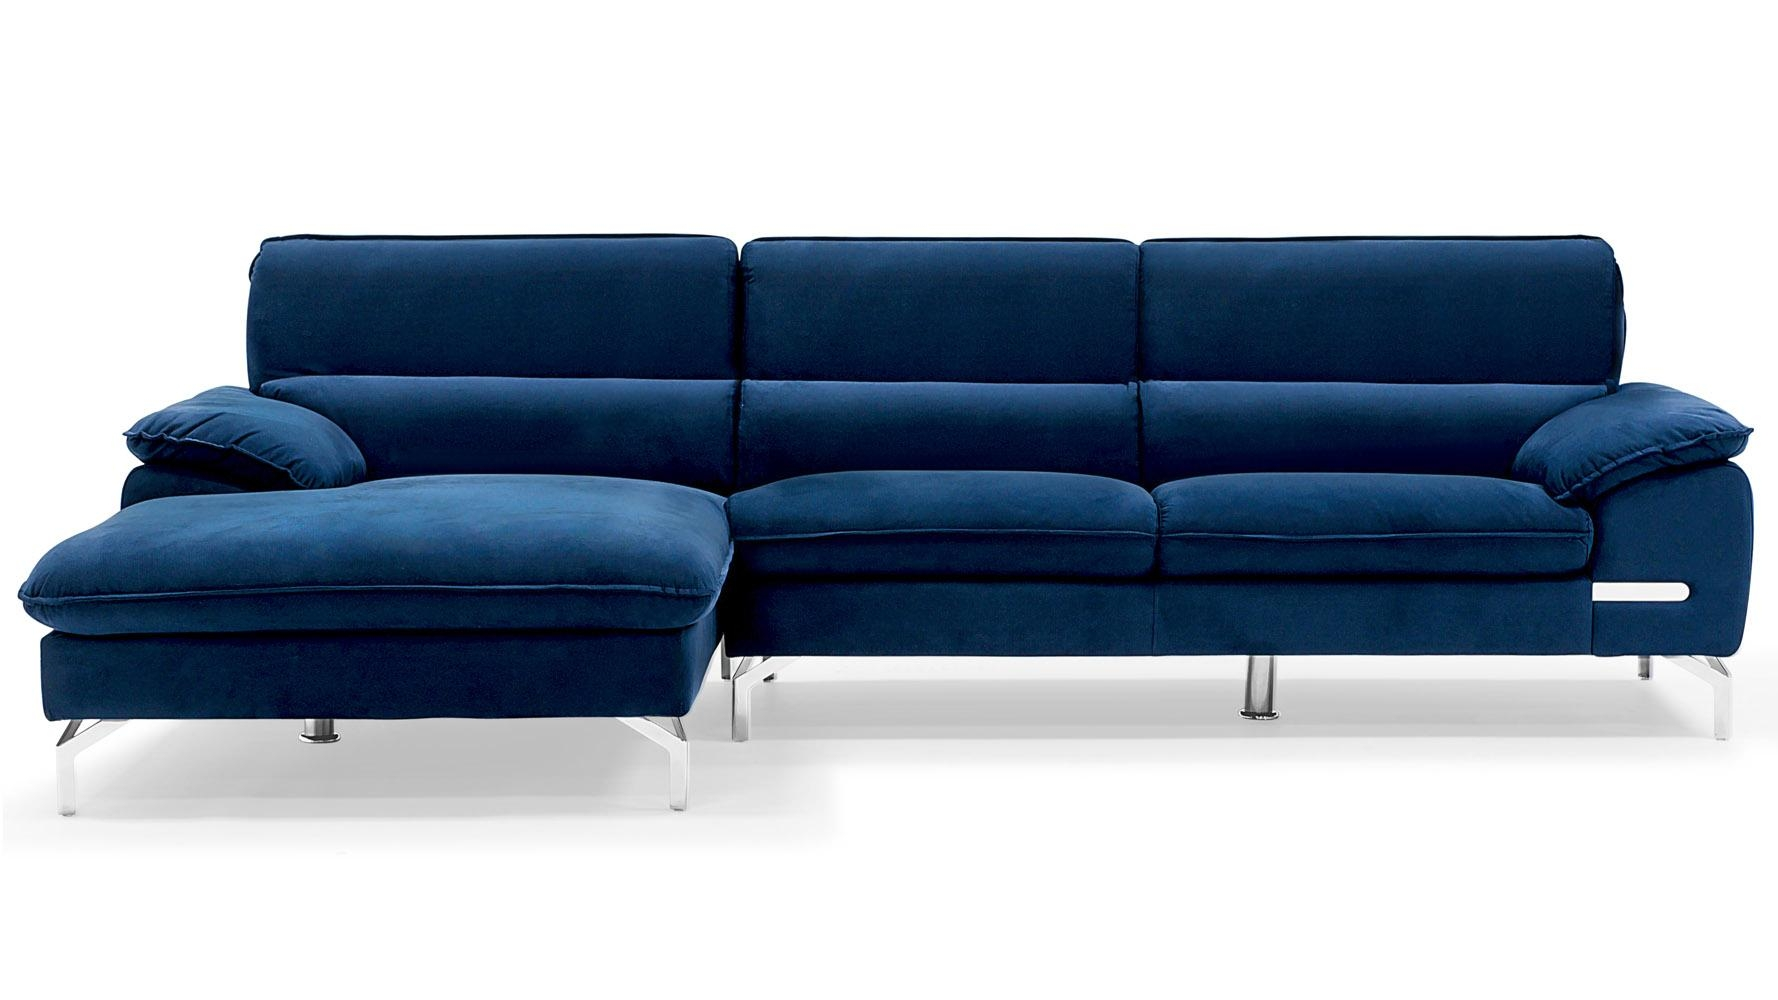 Epic Blue Sectional Sofa With Chaise 83 For Simmons Sleeper Sofa With Regard To Simmons Chaise Sofa (View 18 of 20)